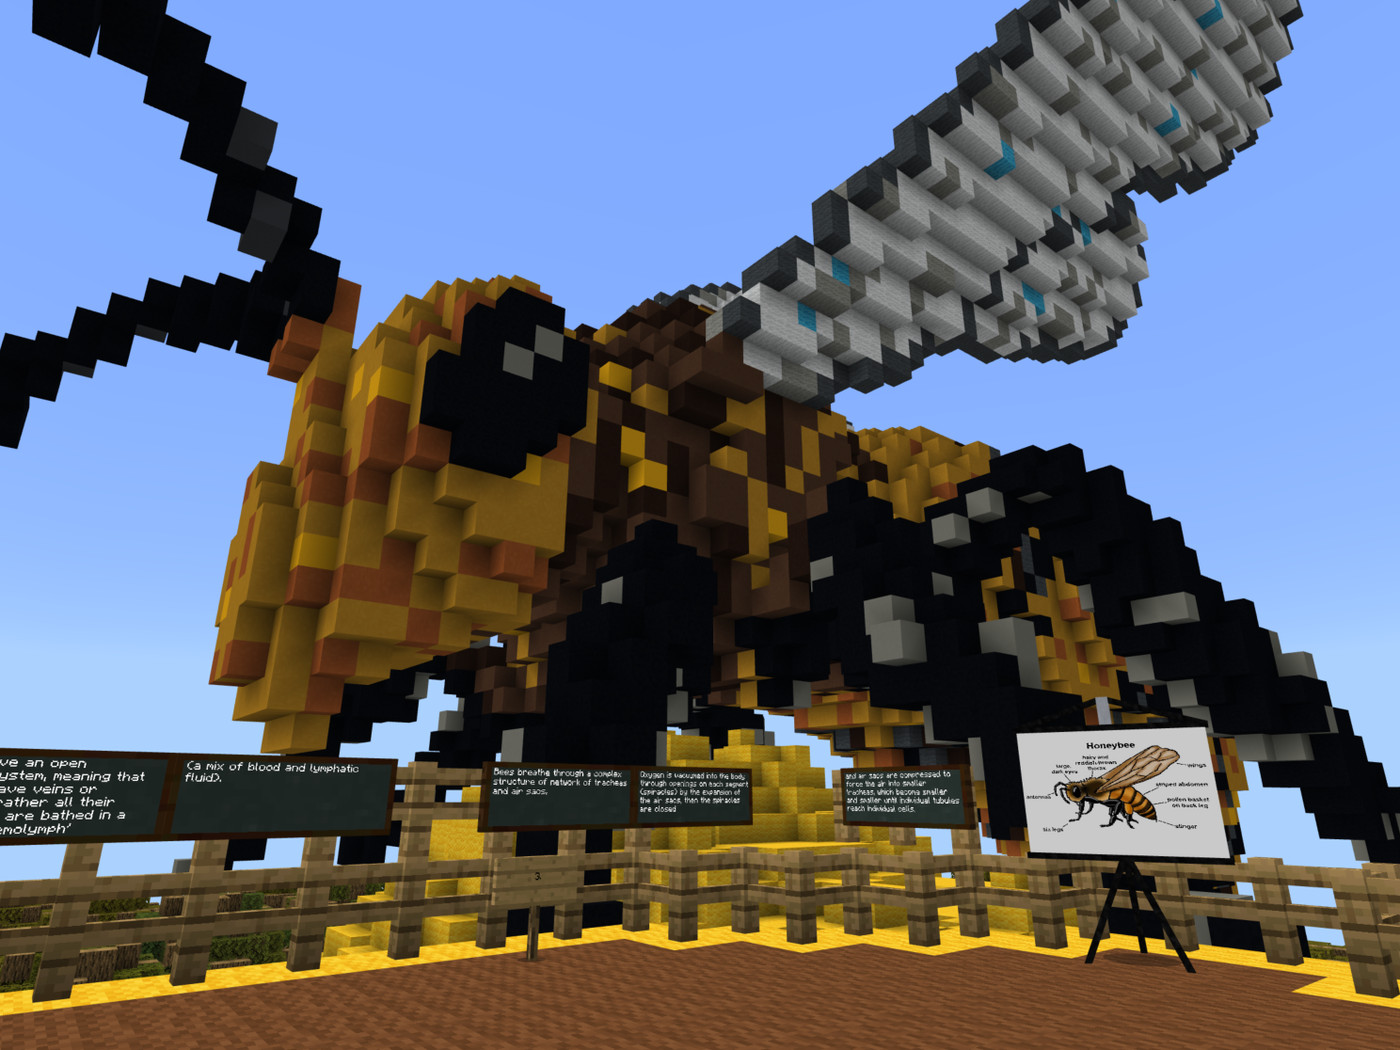 Minecraft Education is perfectly suited for this surreal back to